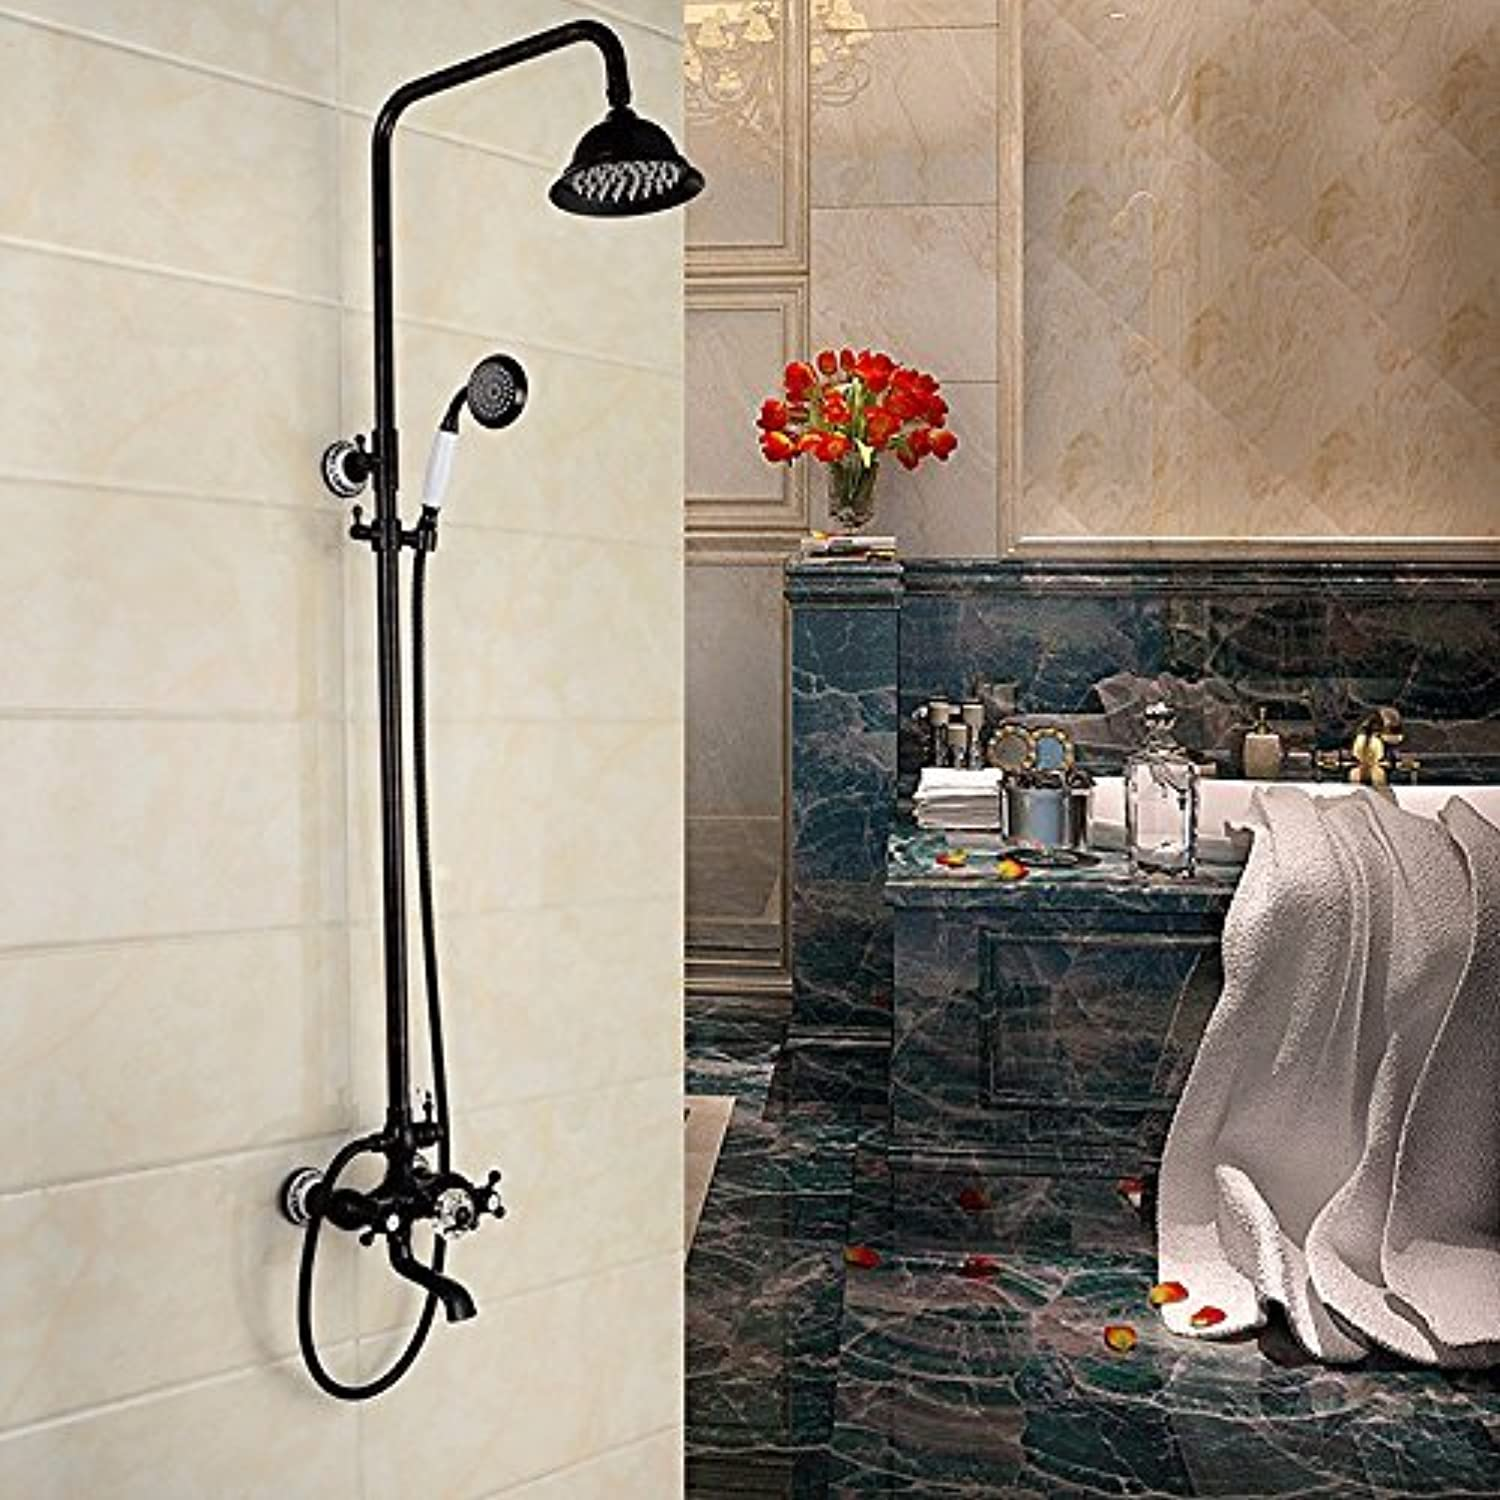 To The Wall Mounted Swivel Belt Delete All Copper Antique Pull Faucet Shower Shower